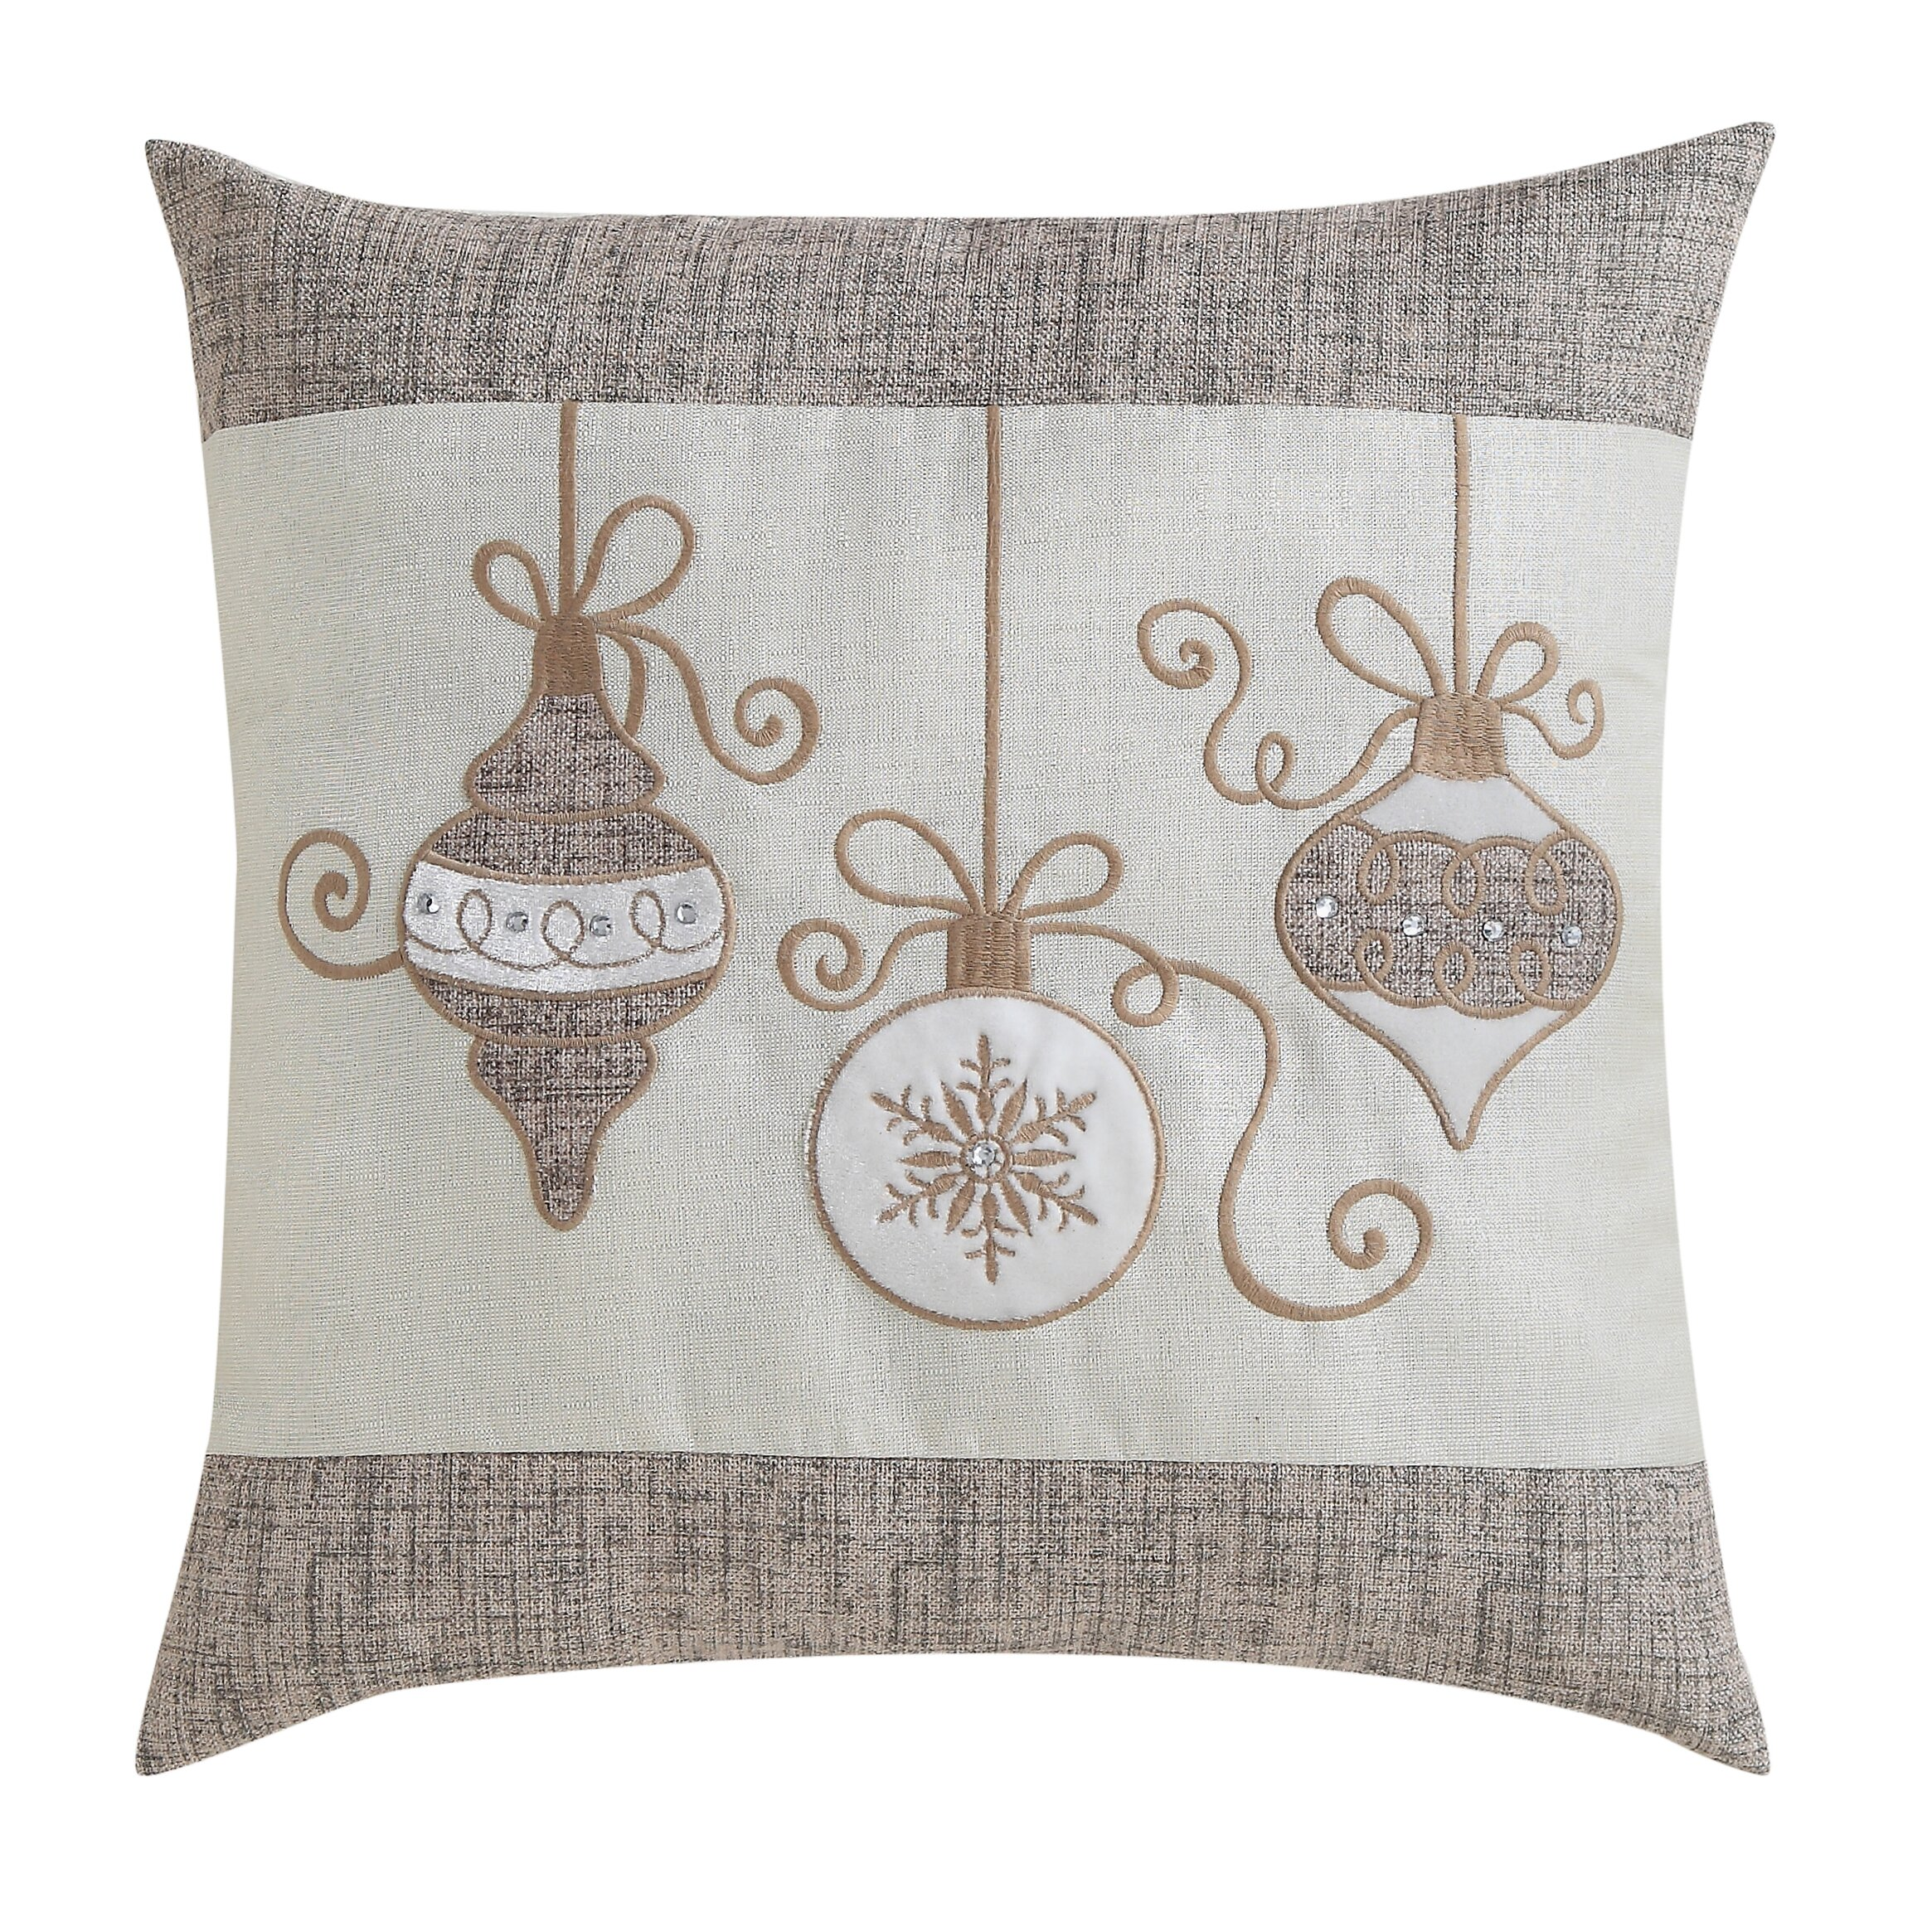 Decorative Christmas Pillows Throws : Alcott Hill Christmas Ornaments Embossed Decorative Holiday Throw Pillow & Reviews Wayfair